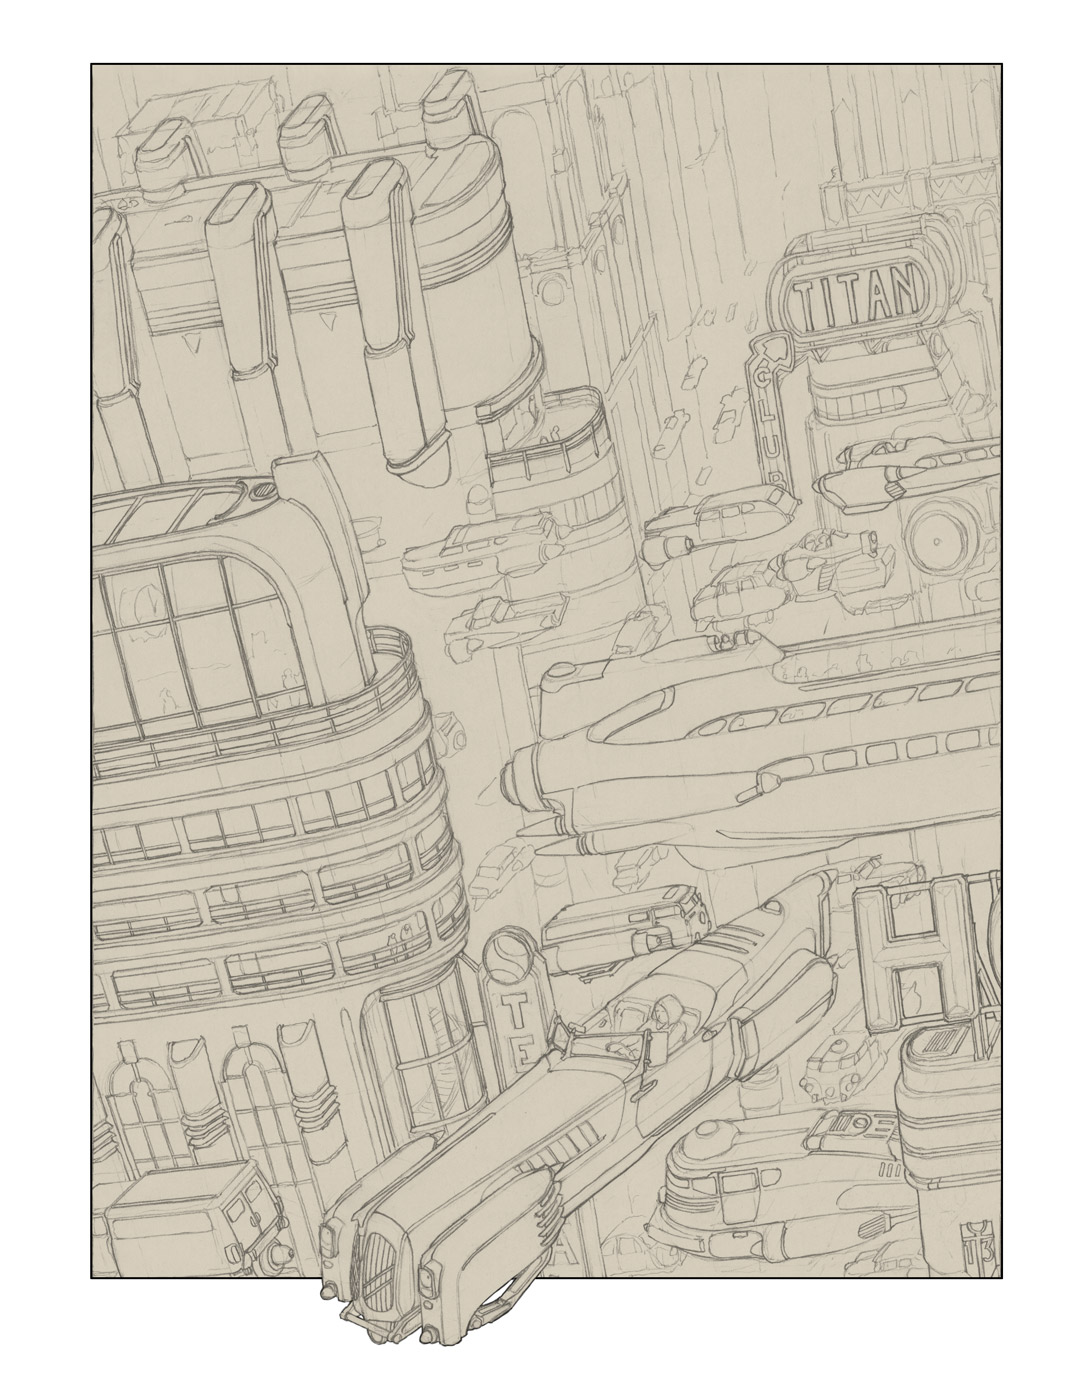 Titan City Terminal - Pencil Sketch by MikeDoscher